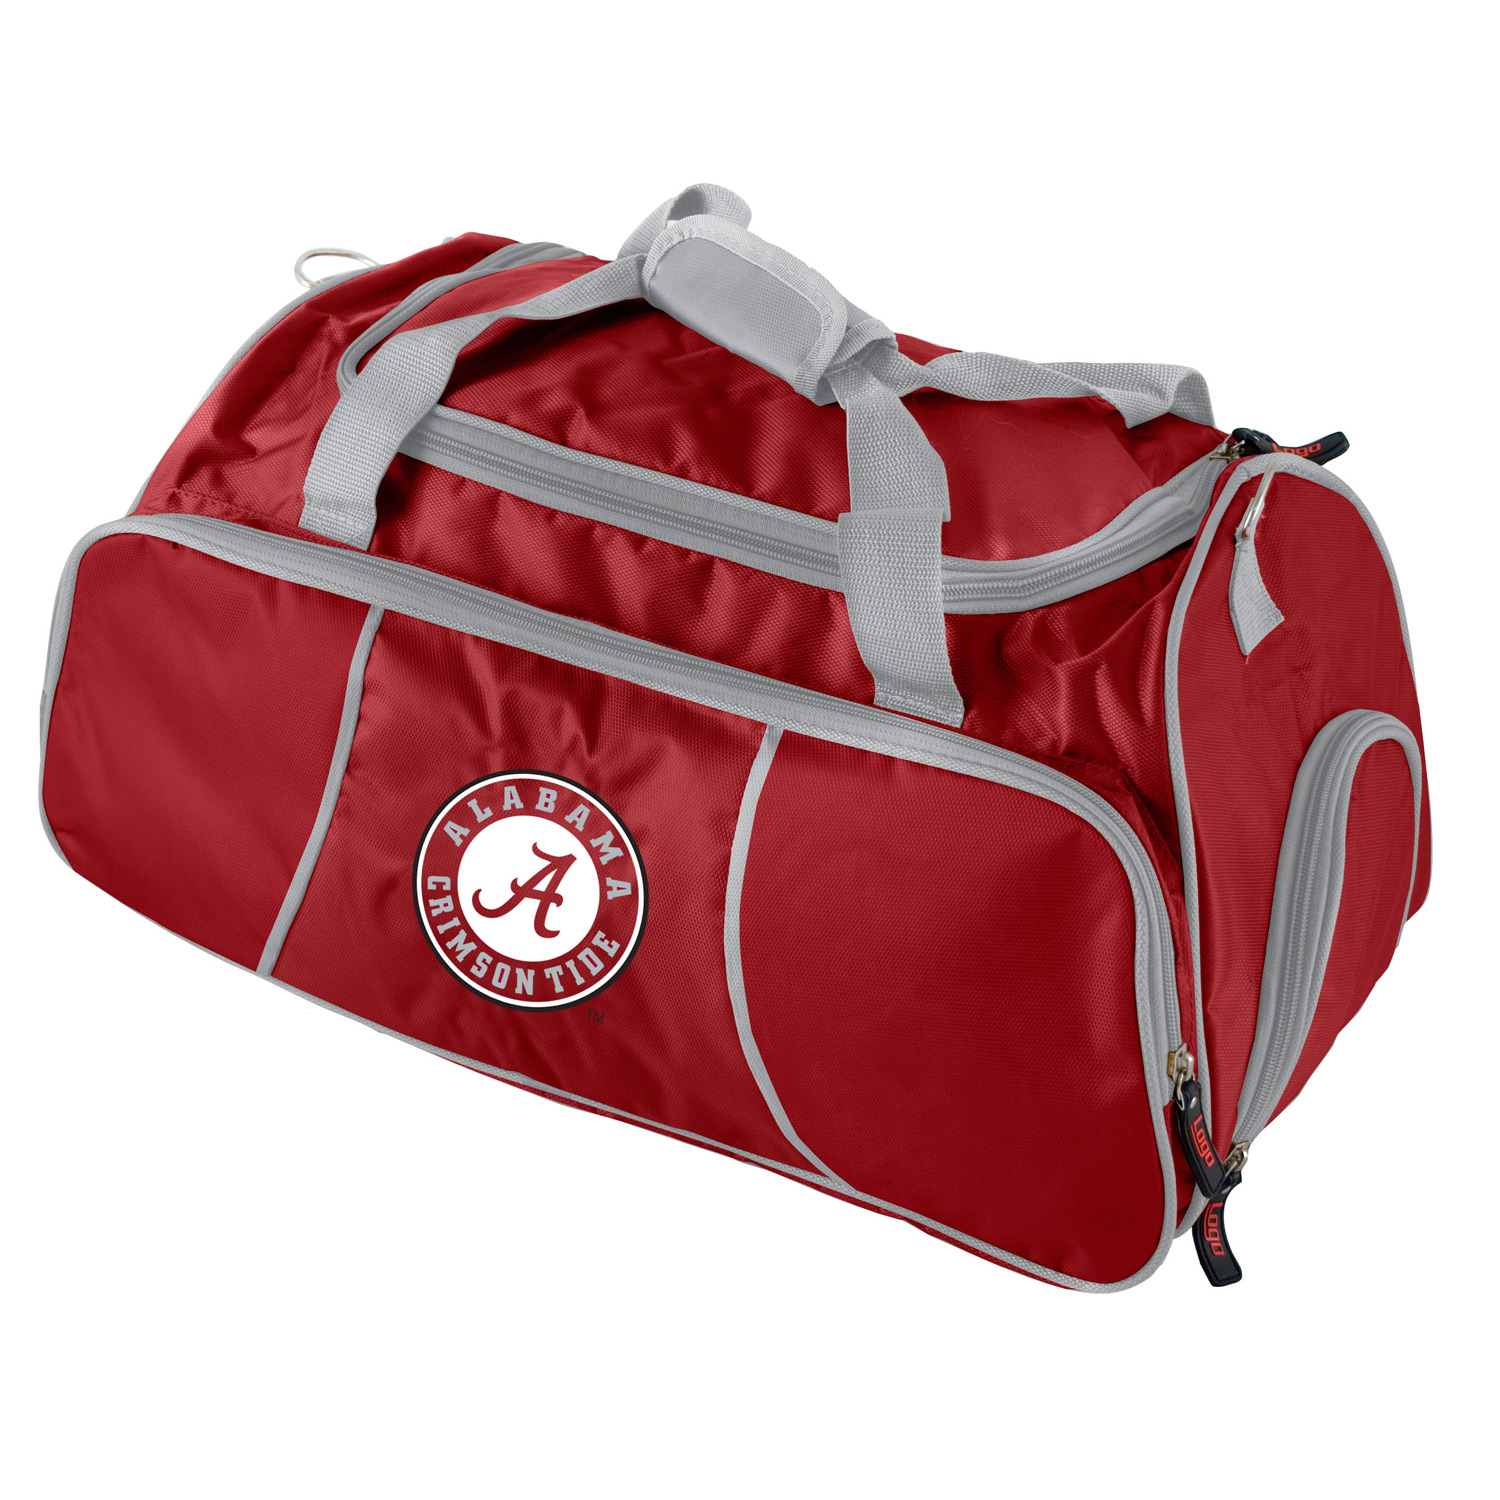 Alabama Crimson Tide Official NCAA Athletic Gym Duffle Bag by Logo 102724